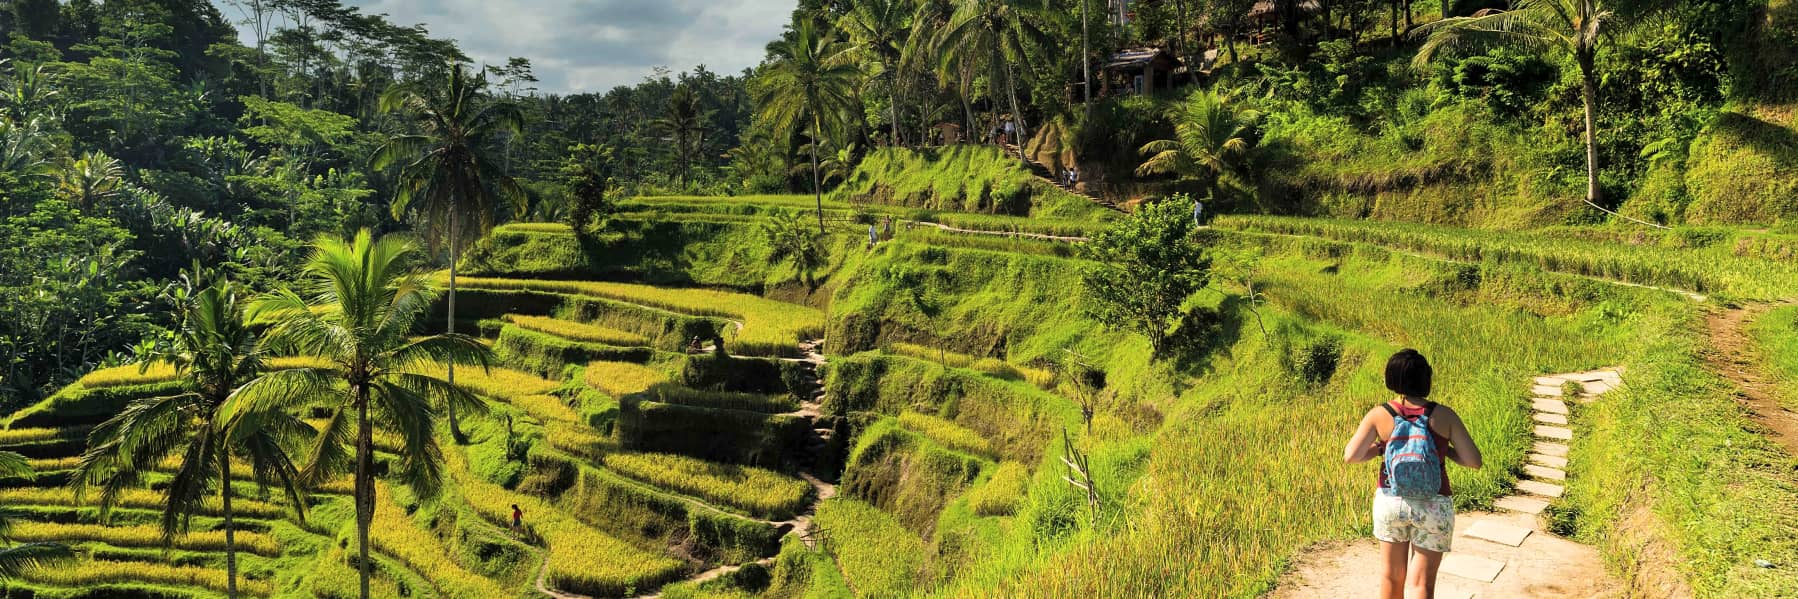 Kintamani Small Group Tour: Tegalalang Rice Terraces, Goa Gajah Temple and more – Full Day gallery